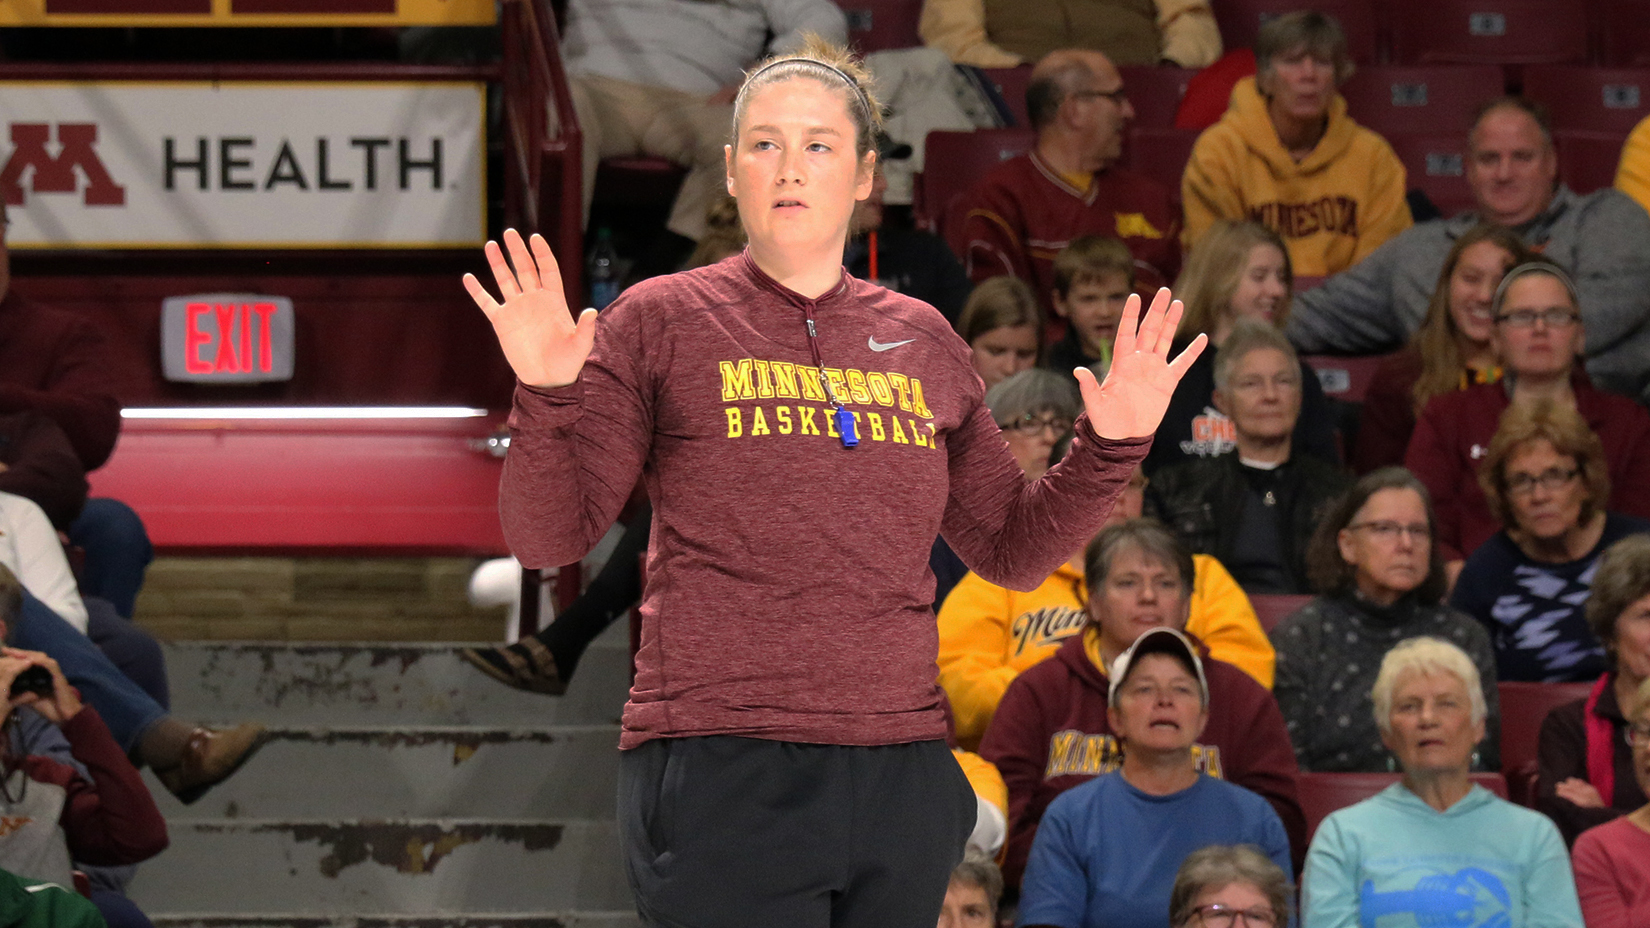 Q&A with Lindsay Whalen: The former WNBA star is ready for her coaching era to begin at alma mater